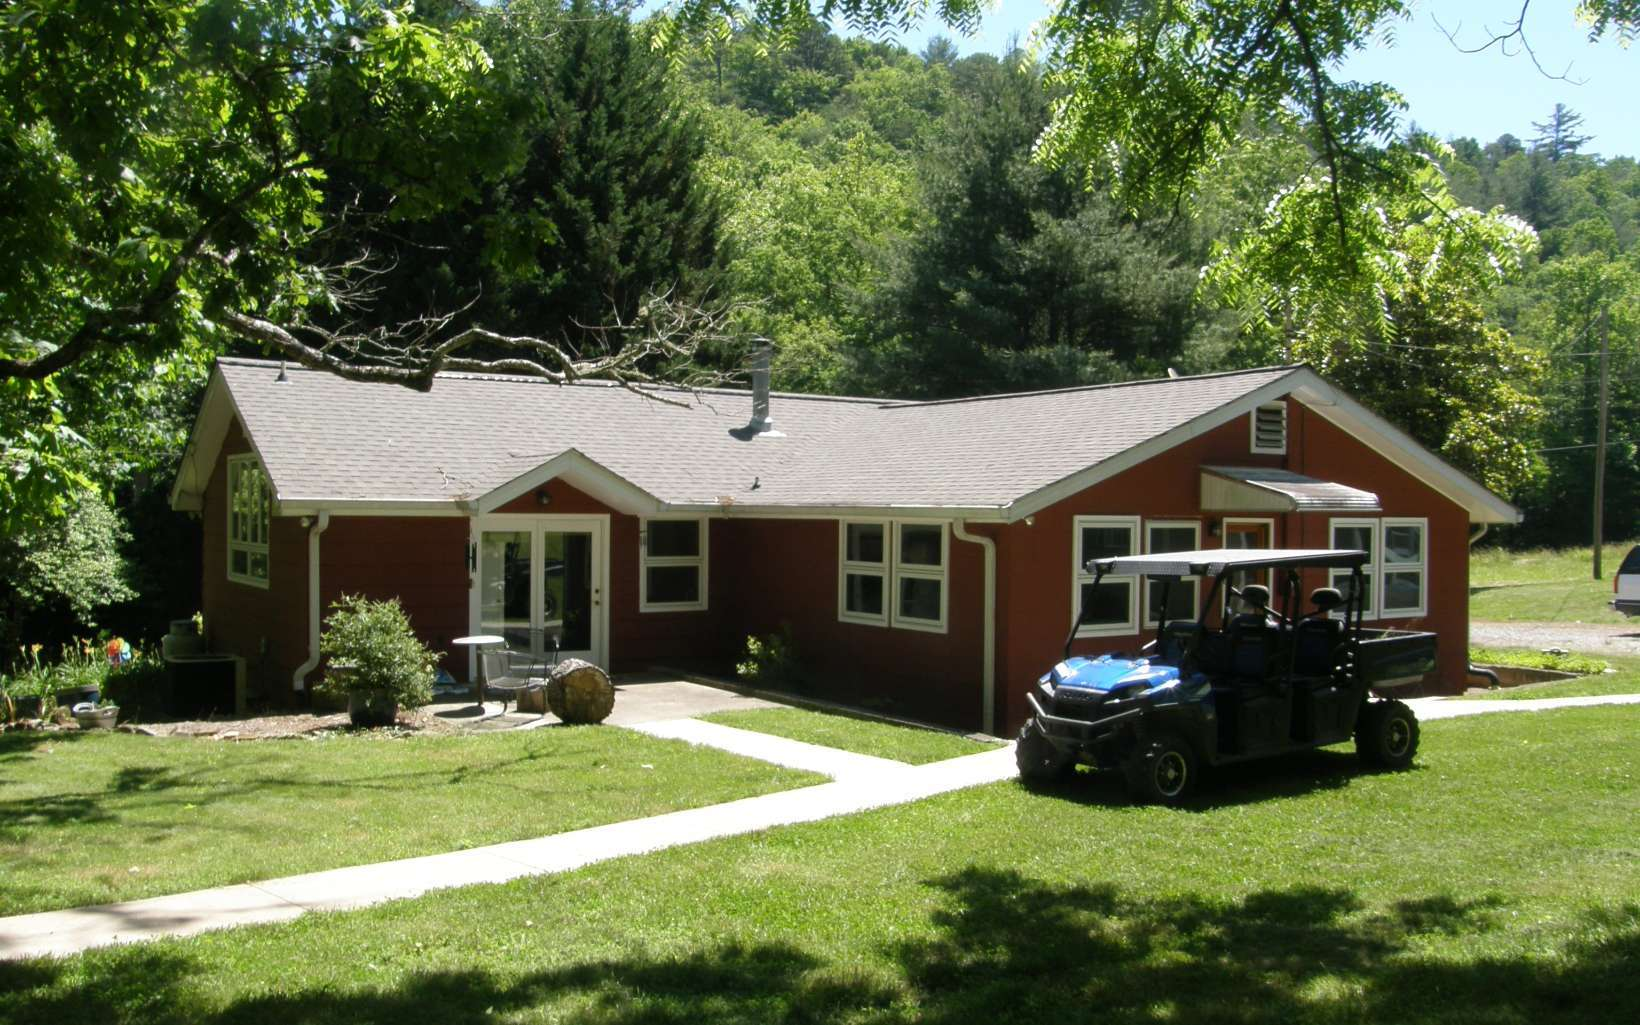 3 bed / 3 baths Home in Hiawassee for $399,000